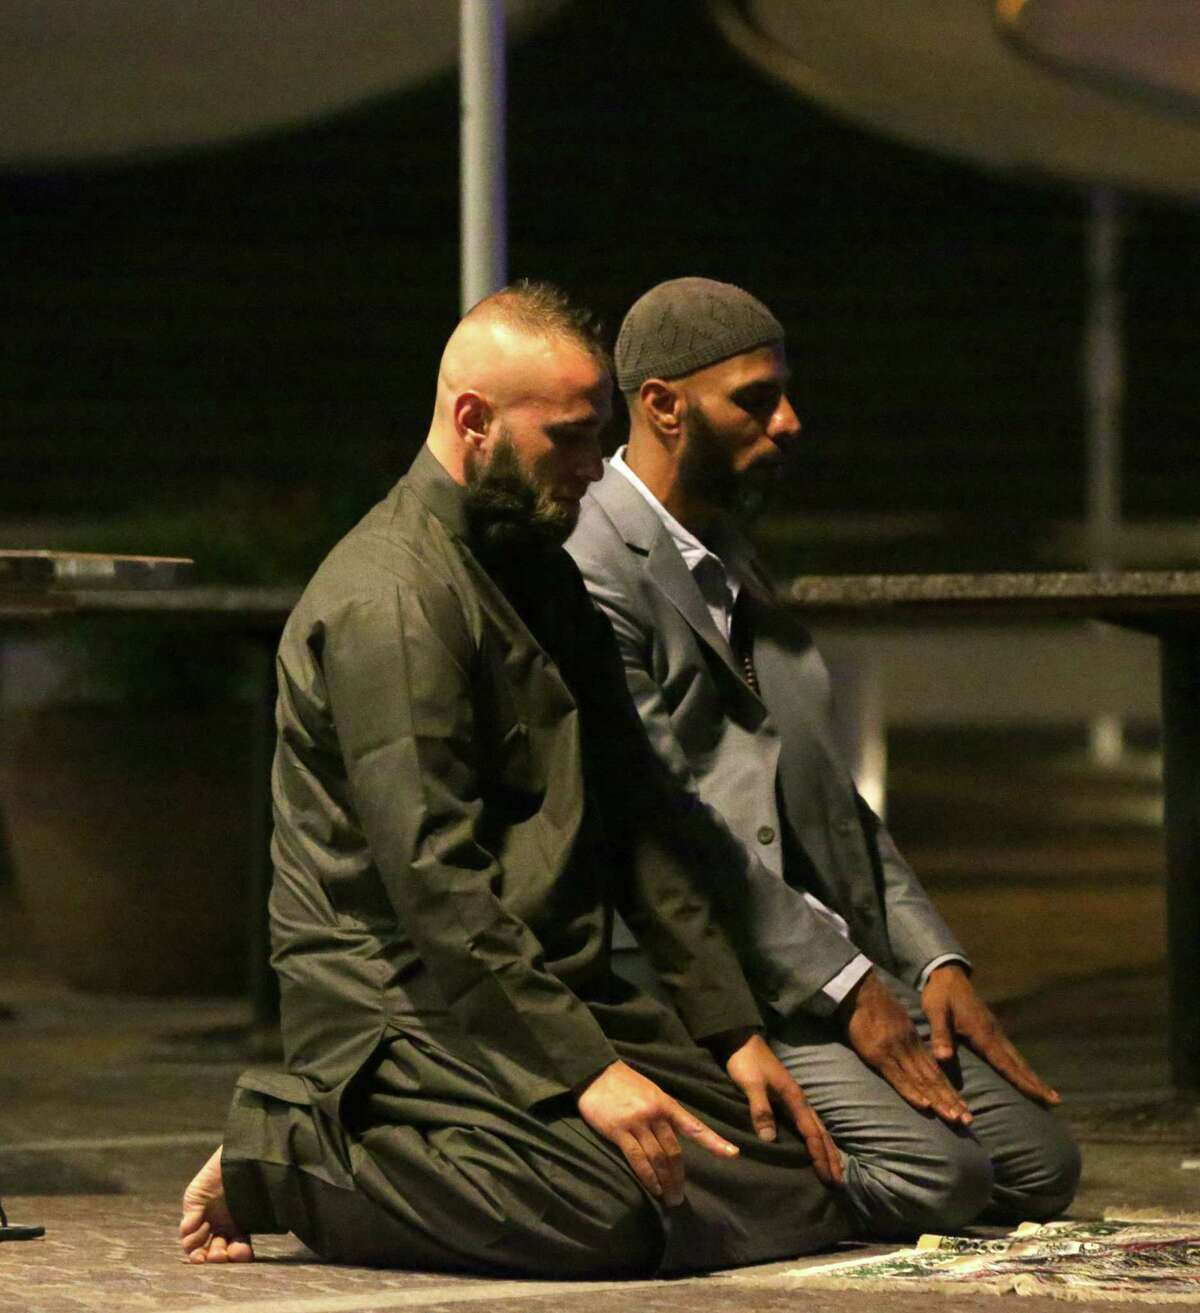 Sam Tiger right, and Abdulrahman El-Lawn perform prayers after a cafe siege in the central business district of Sydney , Australia, Tuesday, Dec. 16, 2014. This was their first prayer of the morning and prayed for peace and to bring comfort upon those affected especially the hostages and their families. They both made a second prayer directed towards Muslims to make the aftermath a peaceful one. (AP Photo/Glenn Nicholls)